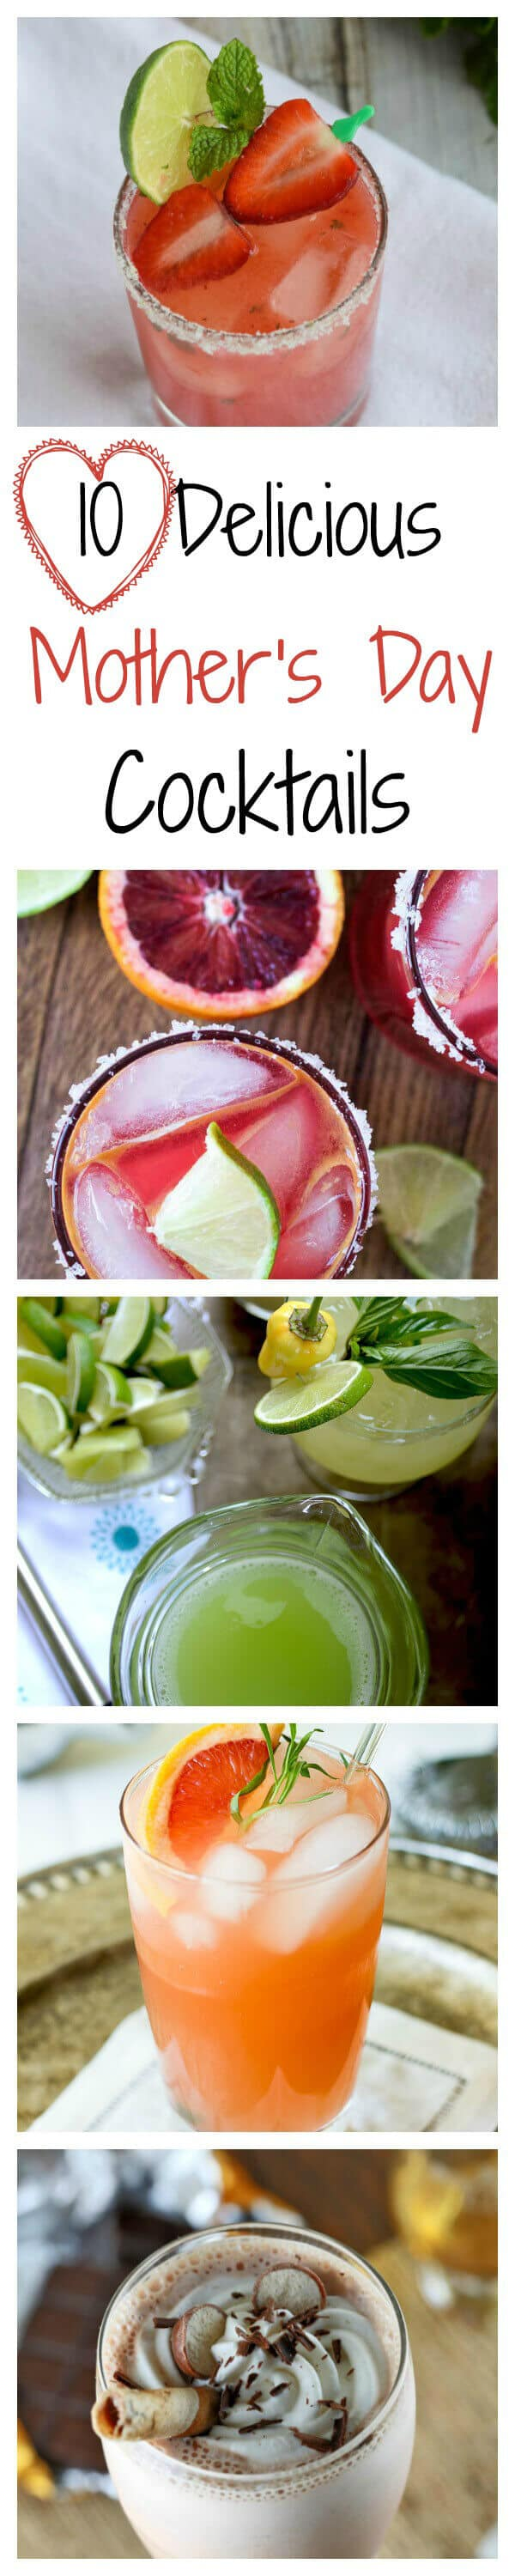 10 Delicious Mother's Day Cocktails